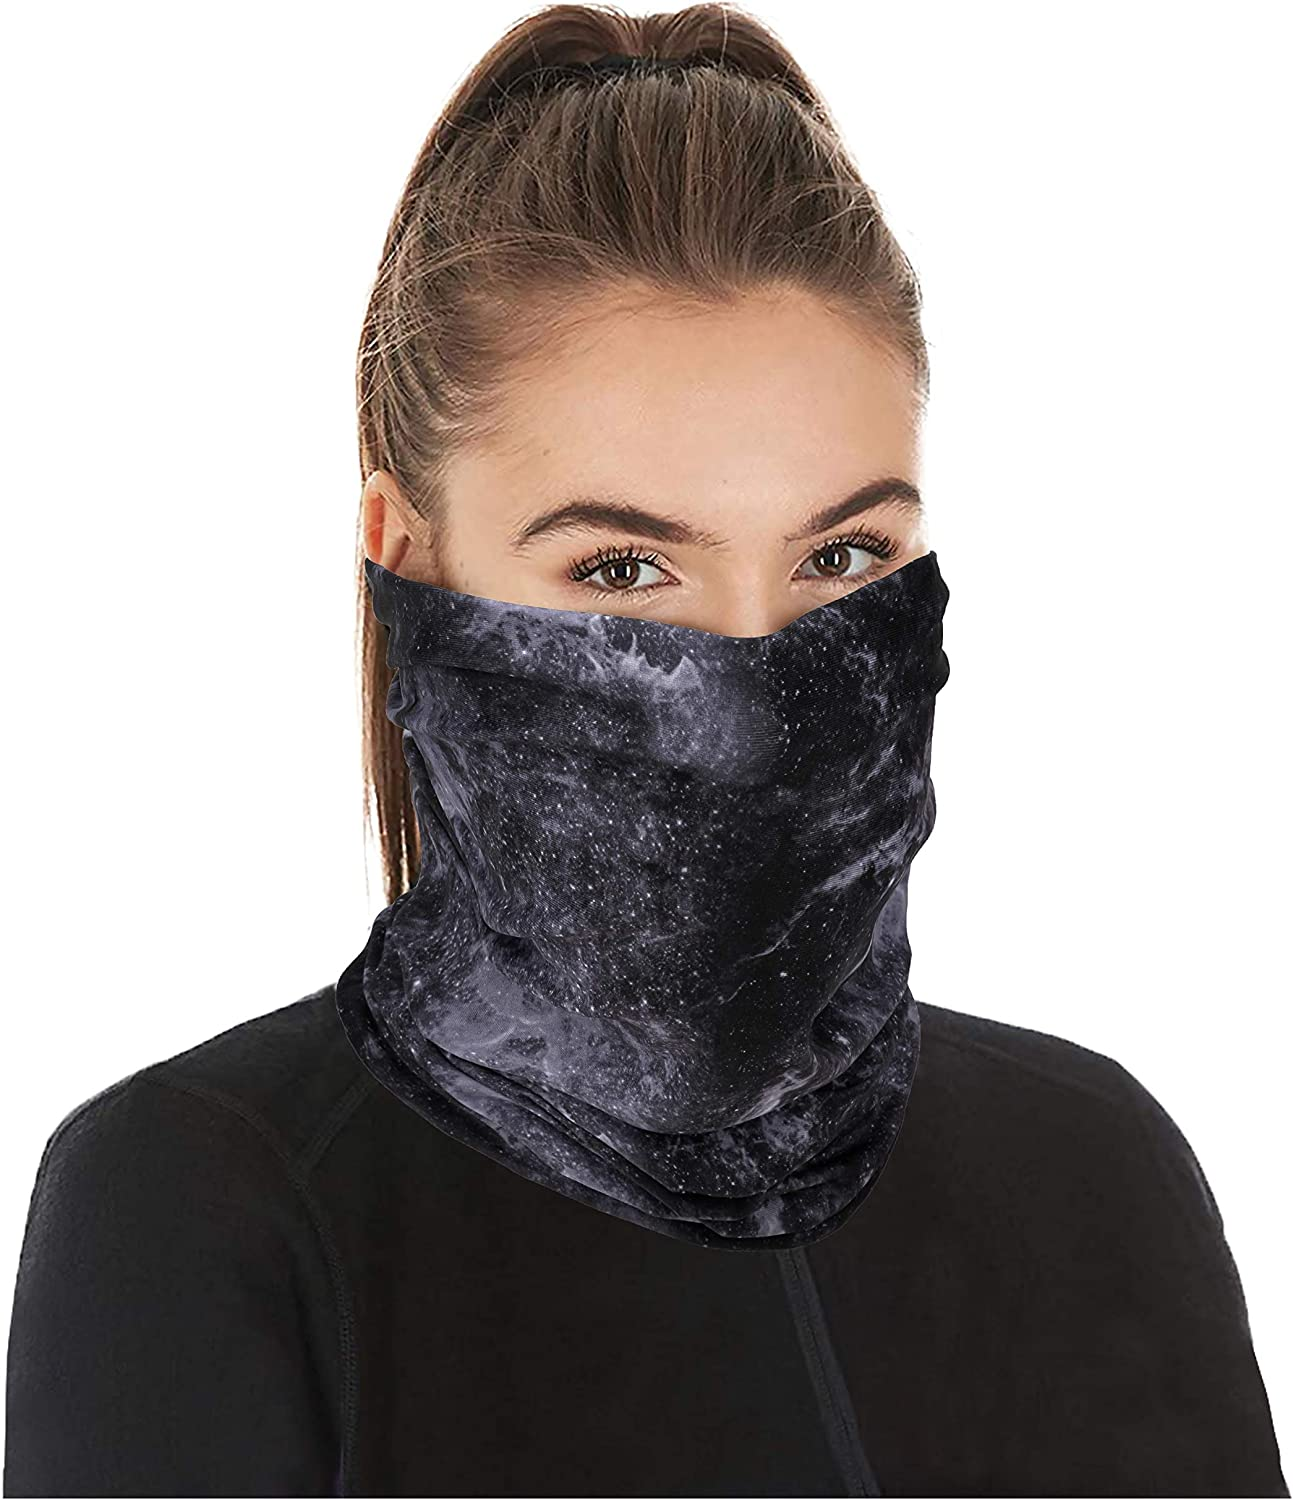 Neck Gaiters Cooling Bandana Face Scarf Women - Balaclava Mask Mouth Cover Stretchable Men Head Wear Outdoor Hunting Dust UV